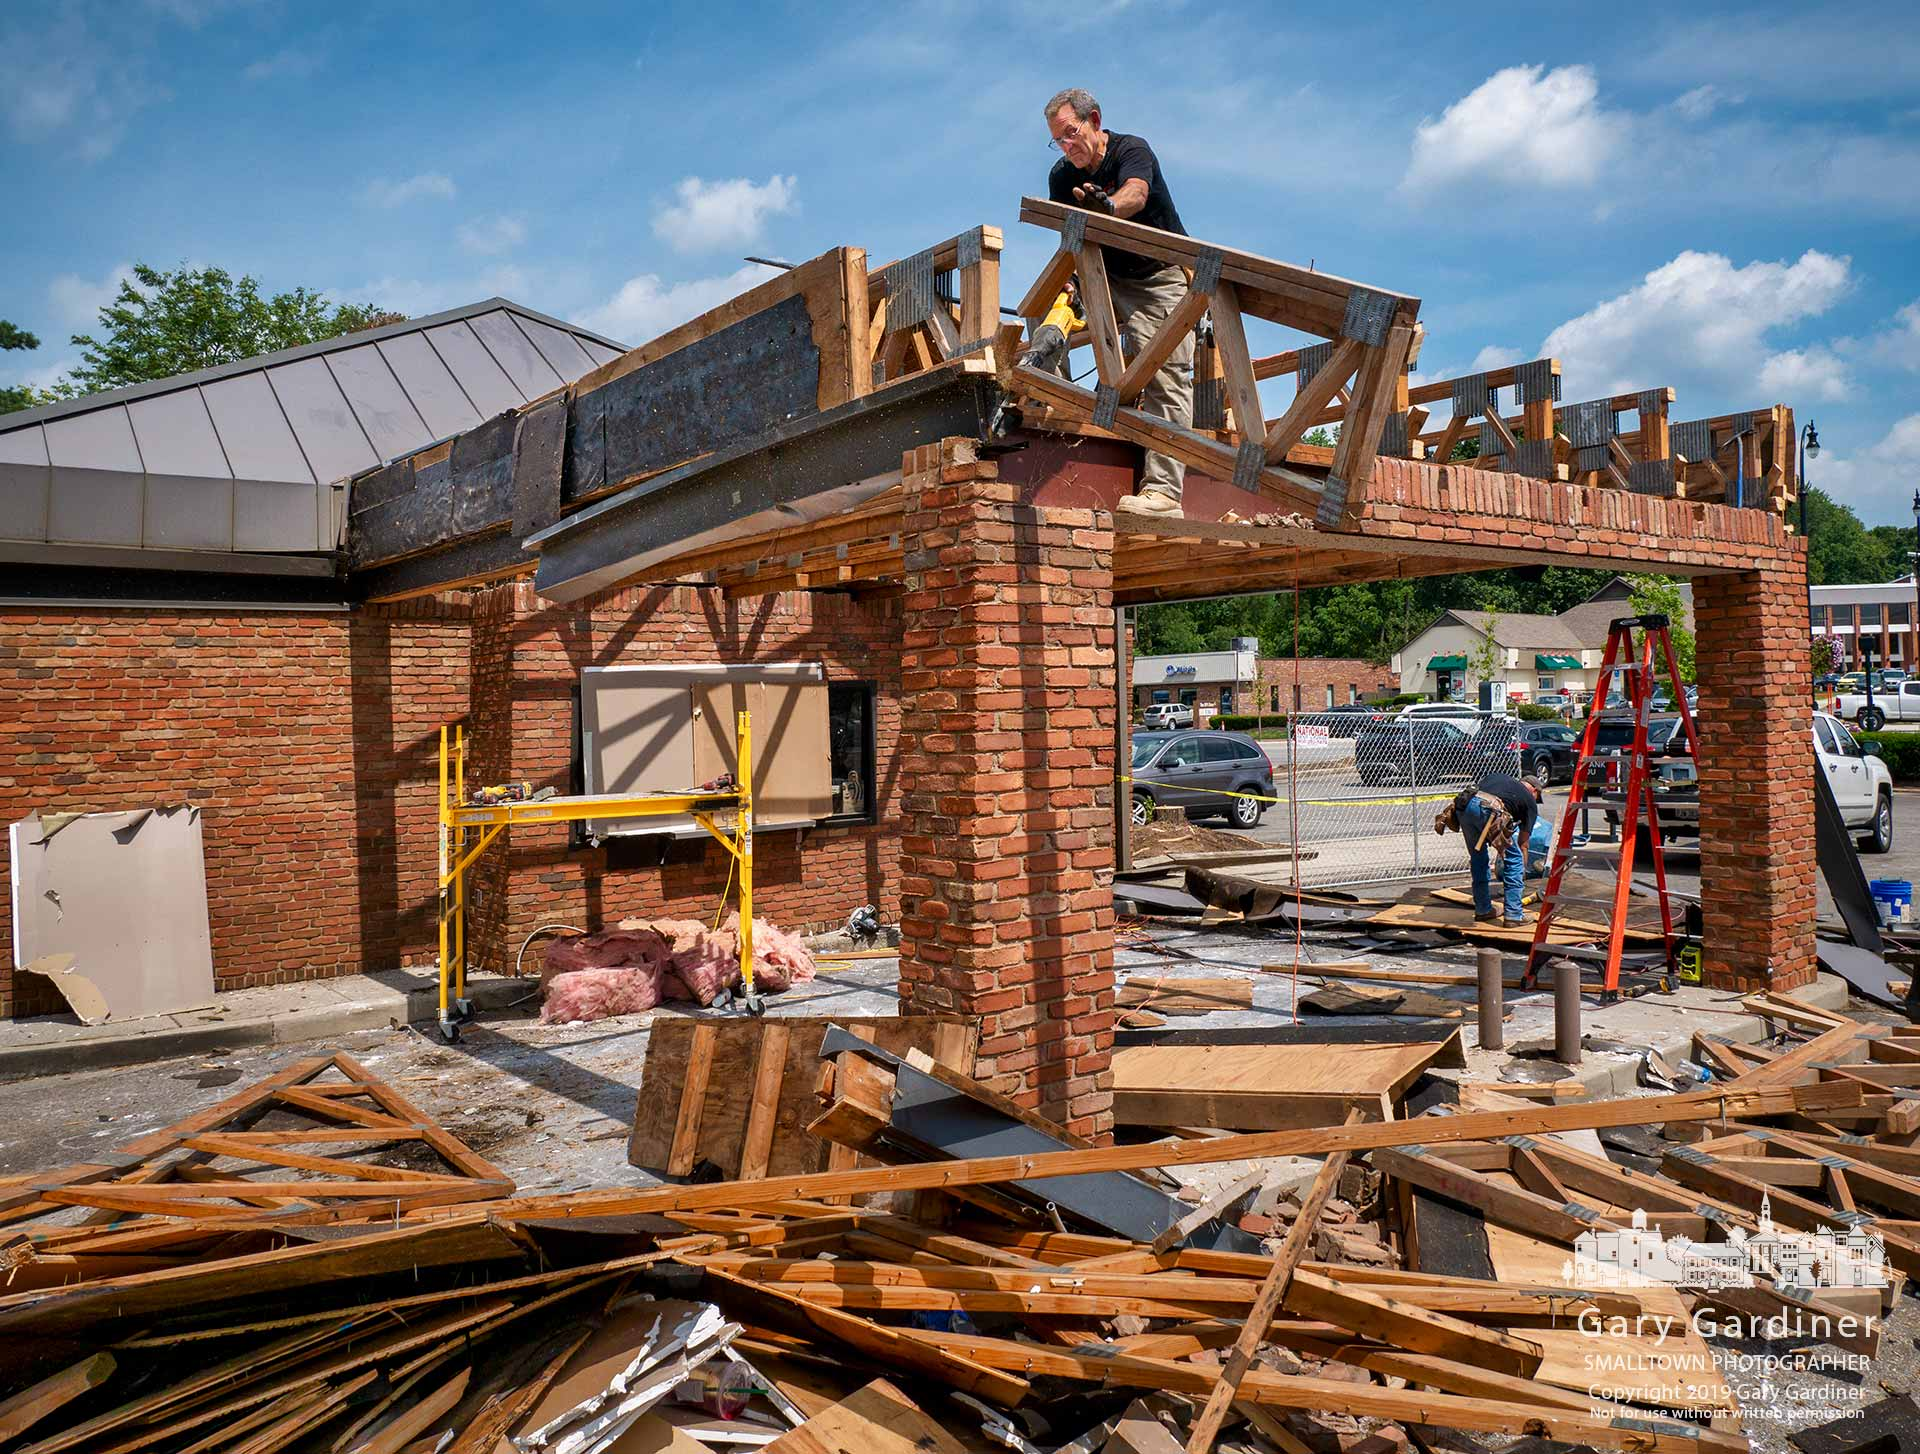 A two-man demolition crew removes the drive-thru overhang at the Starbucks on South State as the coffee purveyor builds a new entrance, drive-thru, and parking lot. My Final Photo for Aug. 20, 2019.